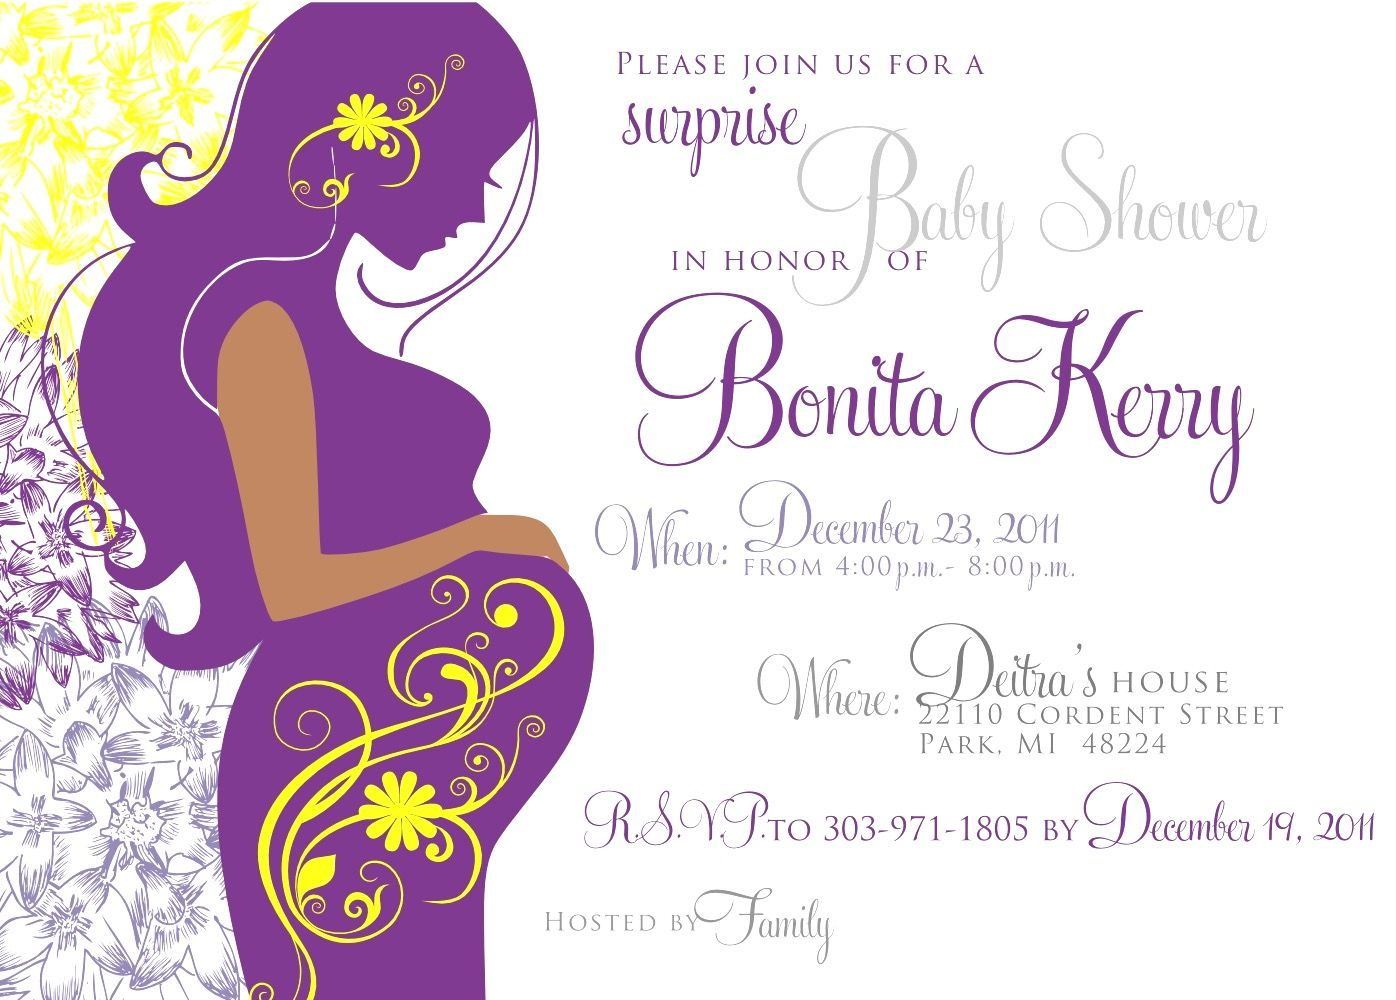 Baby Shower Invitations For Word Templates Fair Free Baby Shower Invitation Templates For Word Www Awalkinhell .